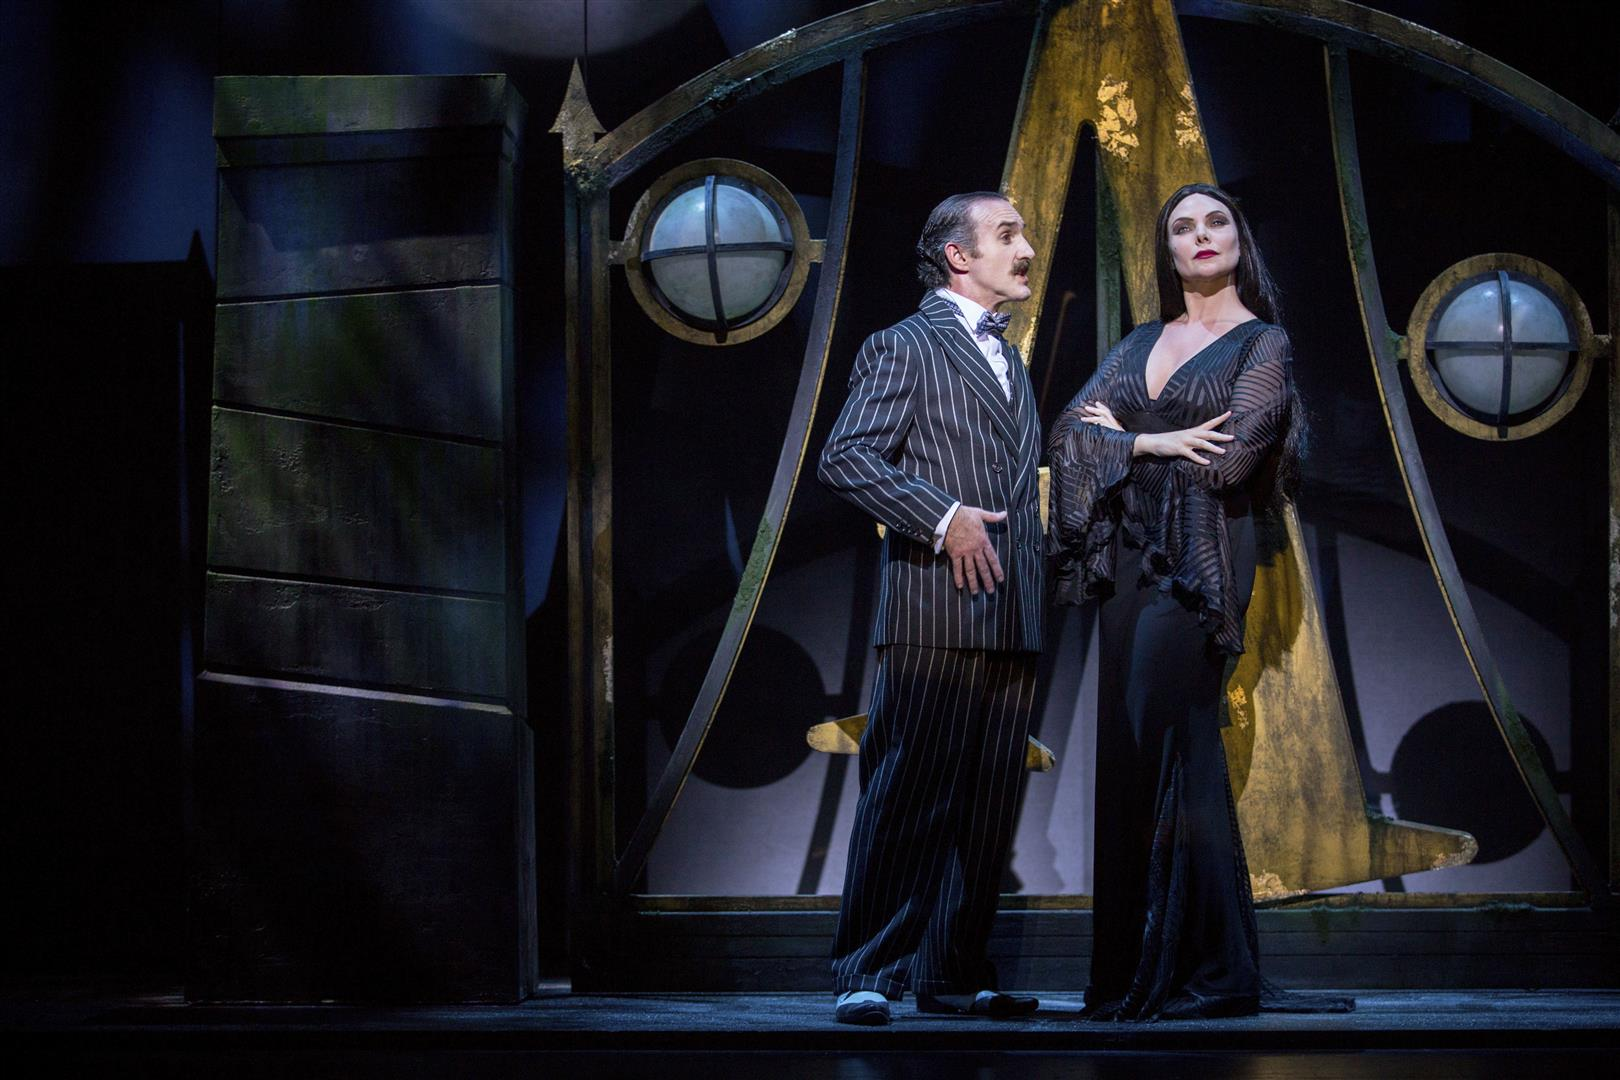 adams family production review Plaza theatre company: the addams family production was great - see 117 traveler reviews, 40 candid photos, and great deals for cleburne, tx, at tripadvisor.